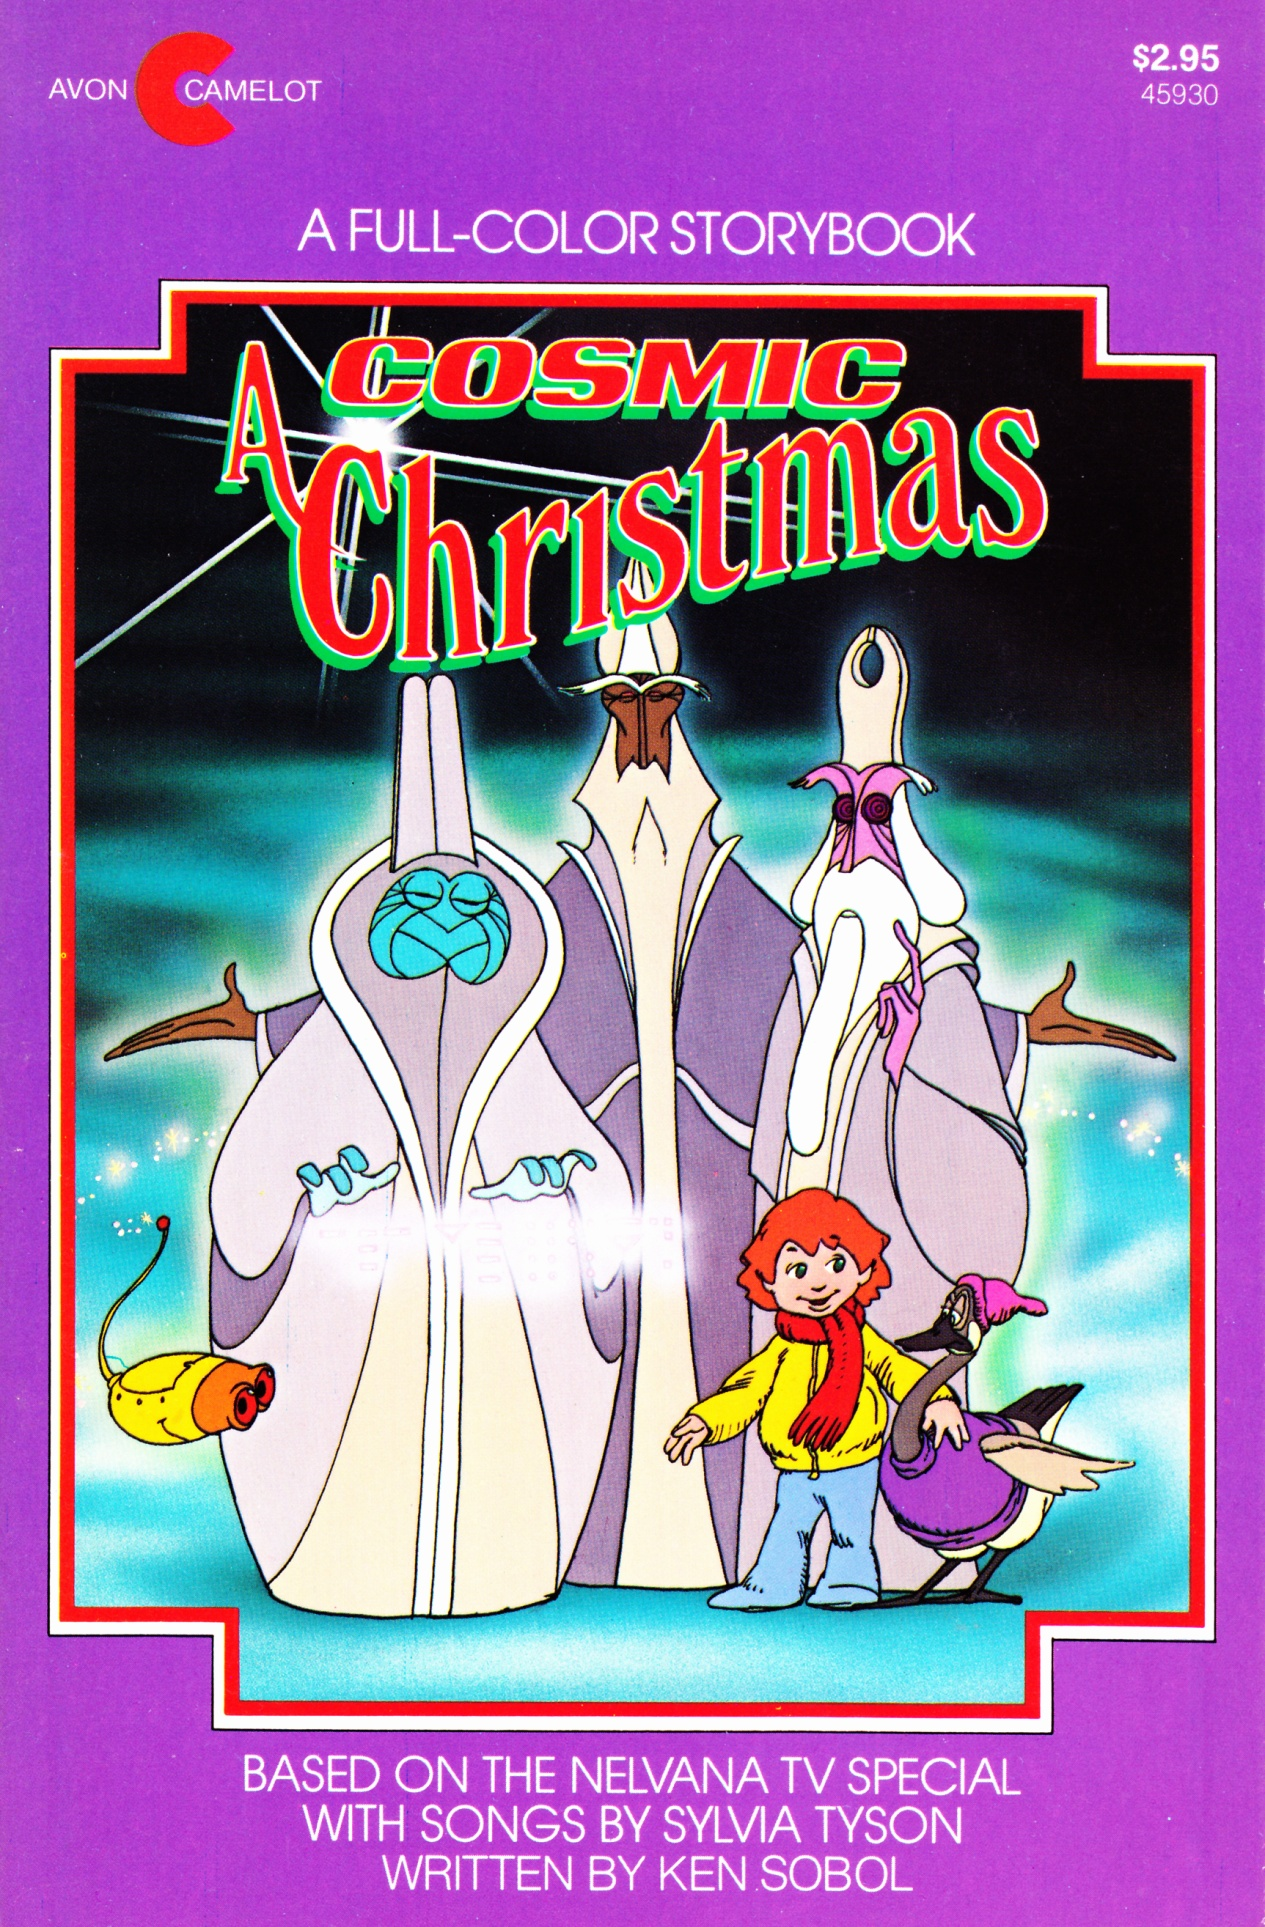 C:\Users\Robert\Documents\CARTOONING ILLUSTRATION ANIMATION\IMAGE BY ANIMATOR\A COSMIC CHRISTMAS, A Cosmic Christmas, 1979, fc.jpg